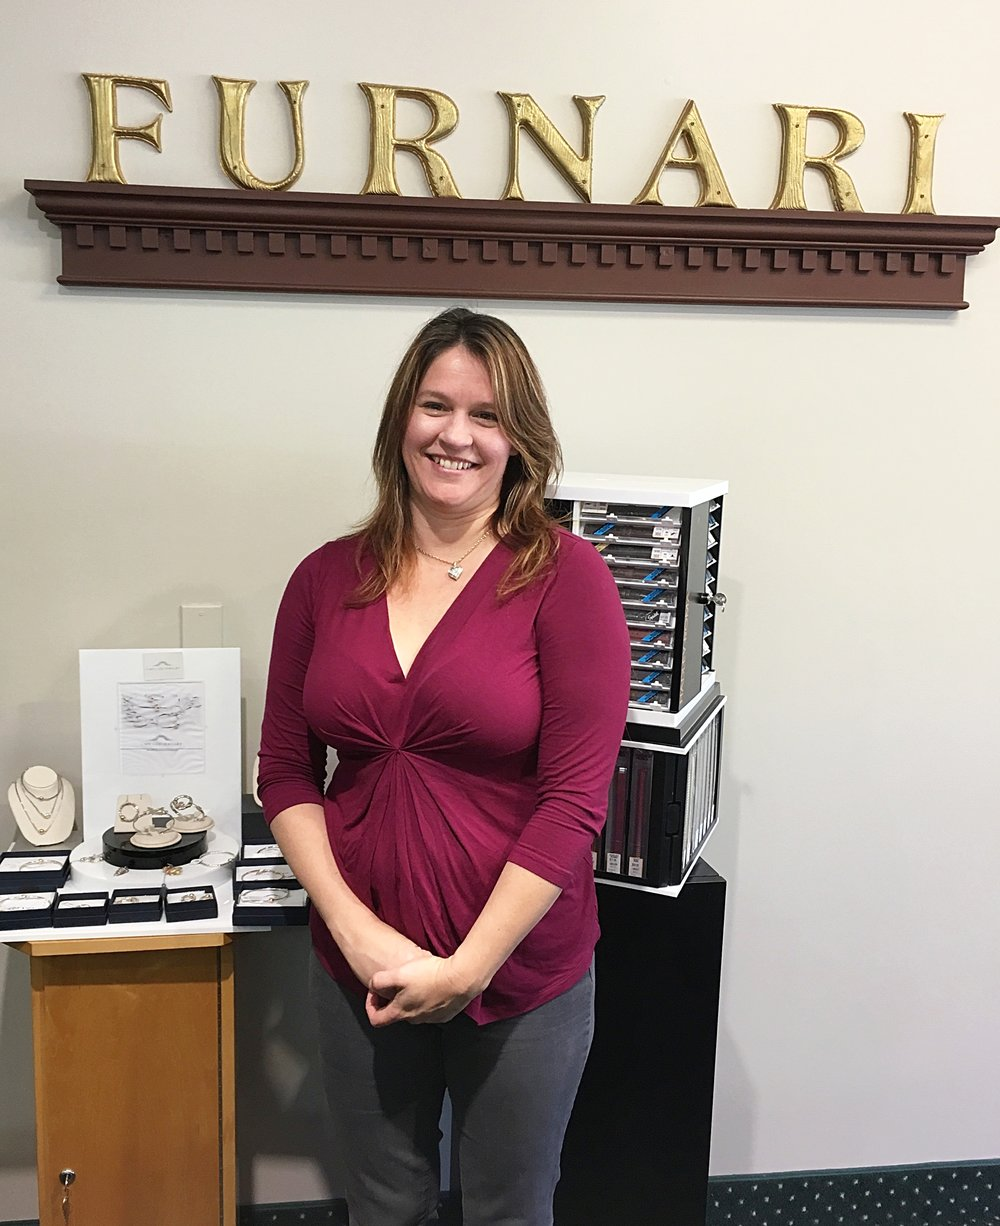 Brenda - Brendajoined the Furnari Team in 2013. She has been working in the jewelry industry for over 25 years.